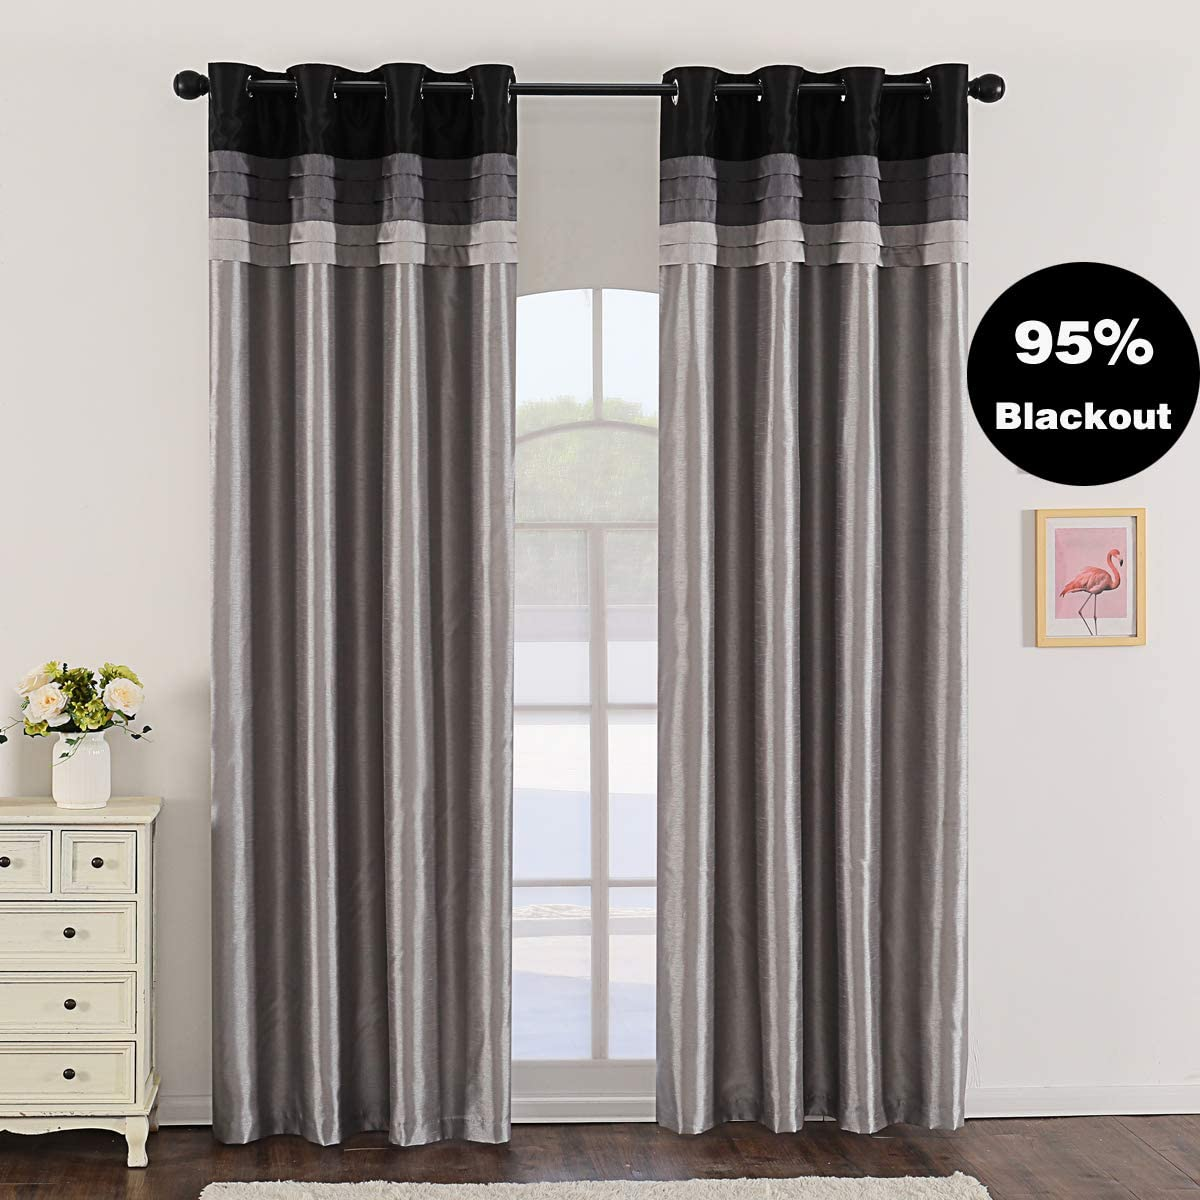 Jarl home 95 Grey Blackout Curtains for Bedroom Stitching Luxury Faux Silk Curtain with Darkening Liner Grommet 2 Panels Kitchen Curtains for Living Room